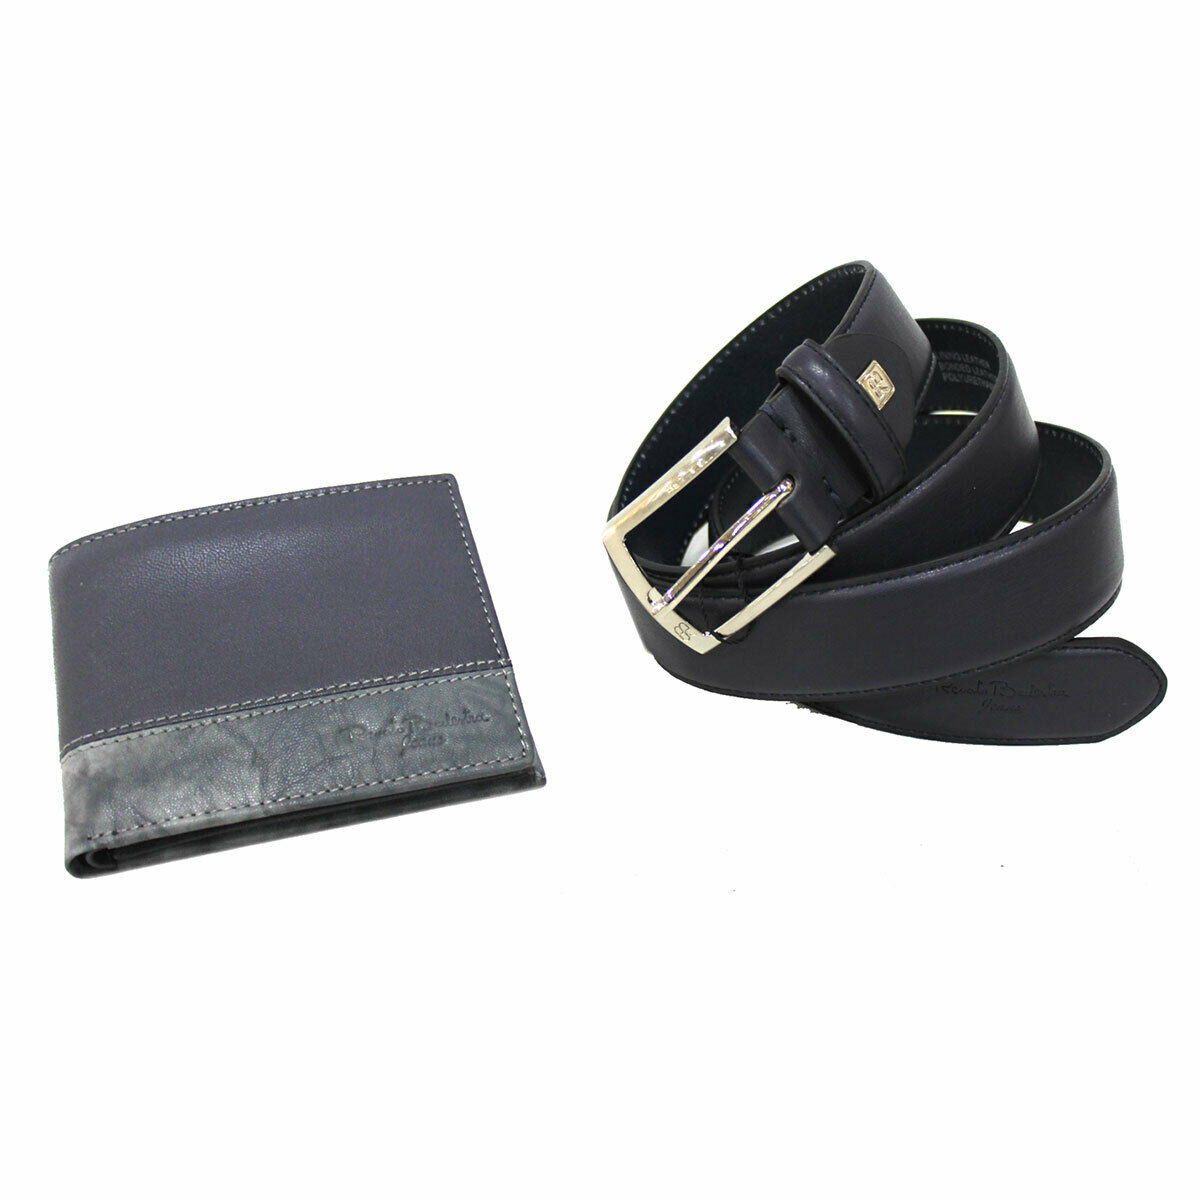 Men's set faux leather belt 35 mm high size 125 and leather wallet in box blue